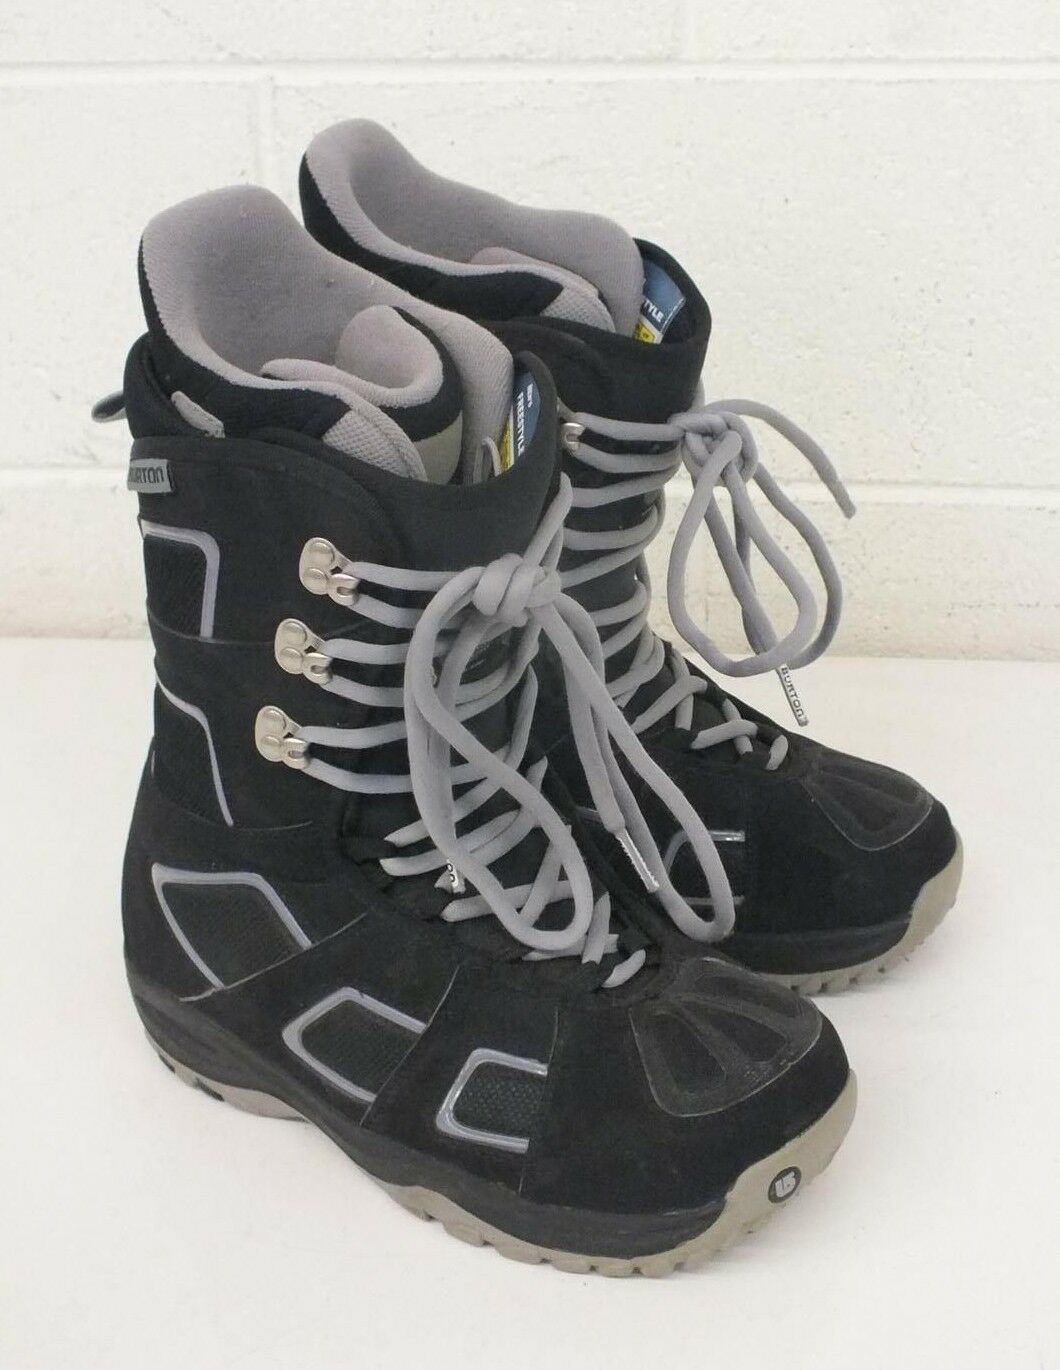 Burton Freestyle High-Quality All-Mountain Snowboarding Boots US Men's 7